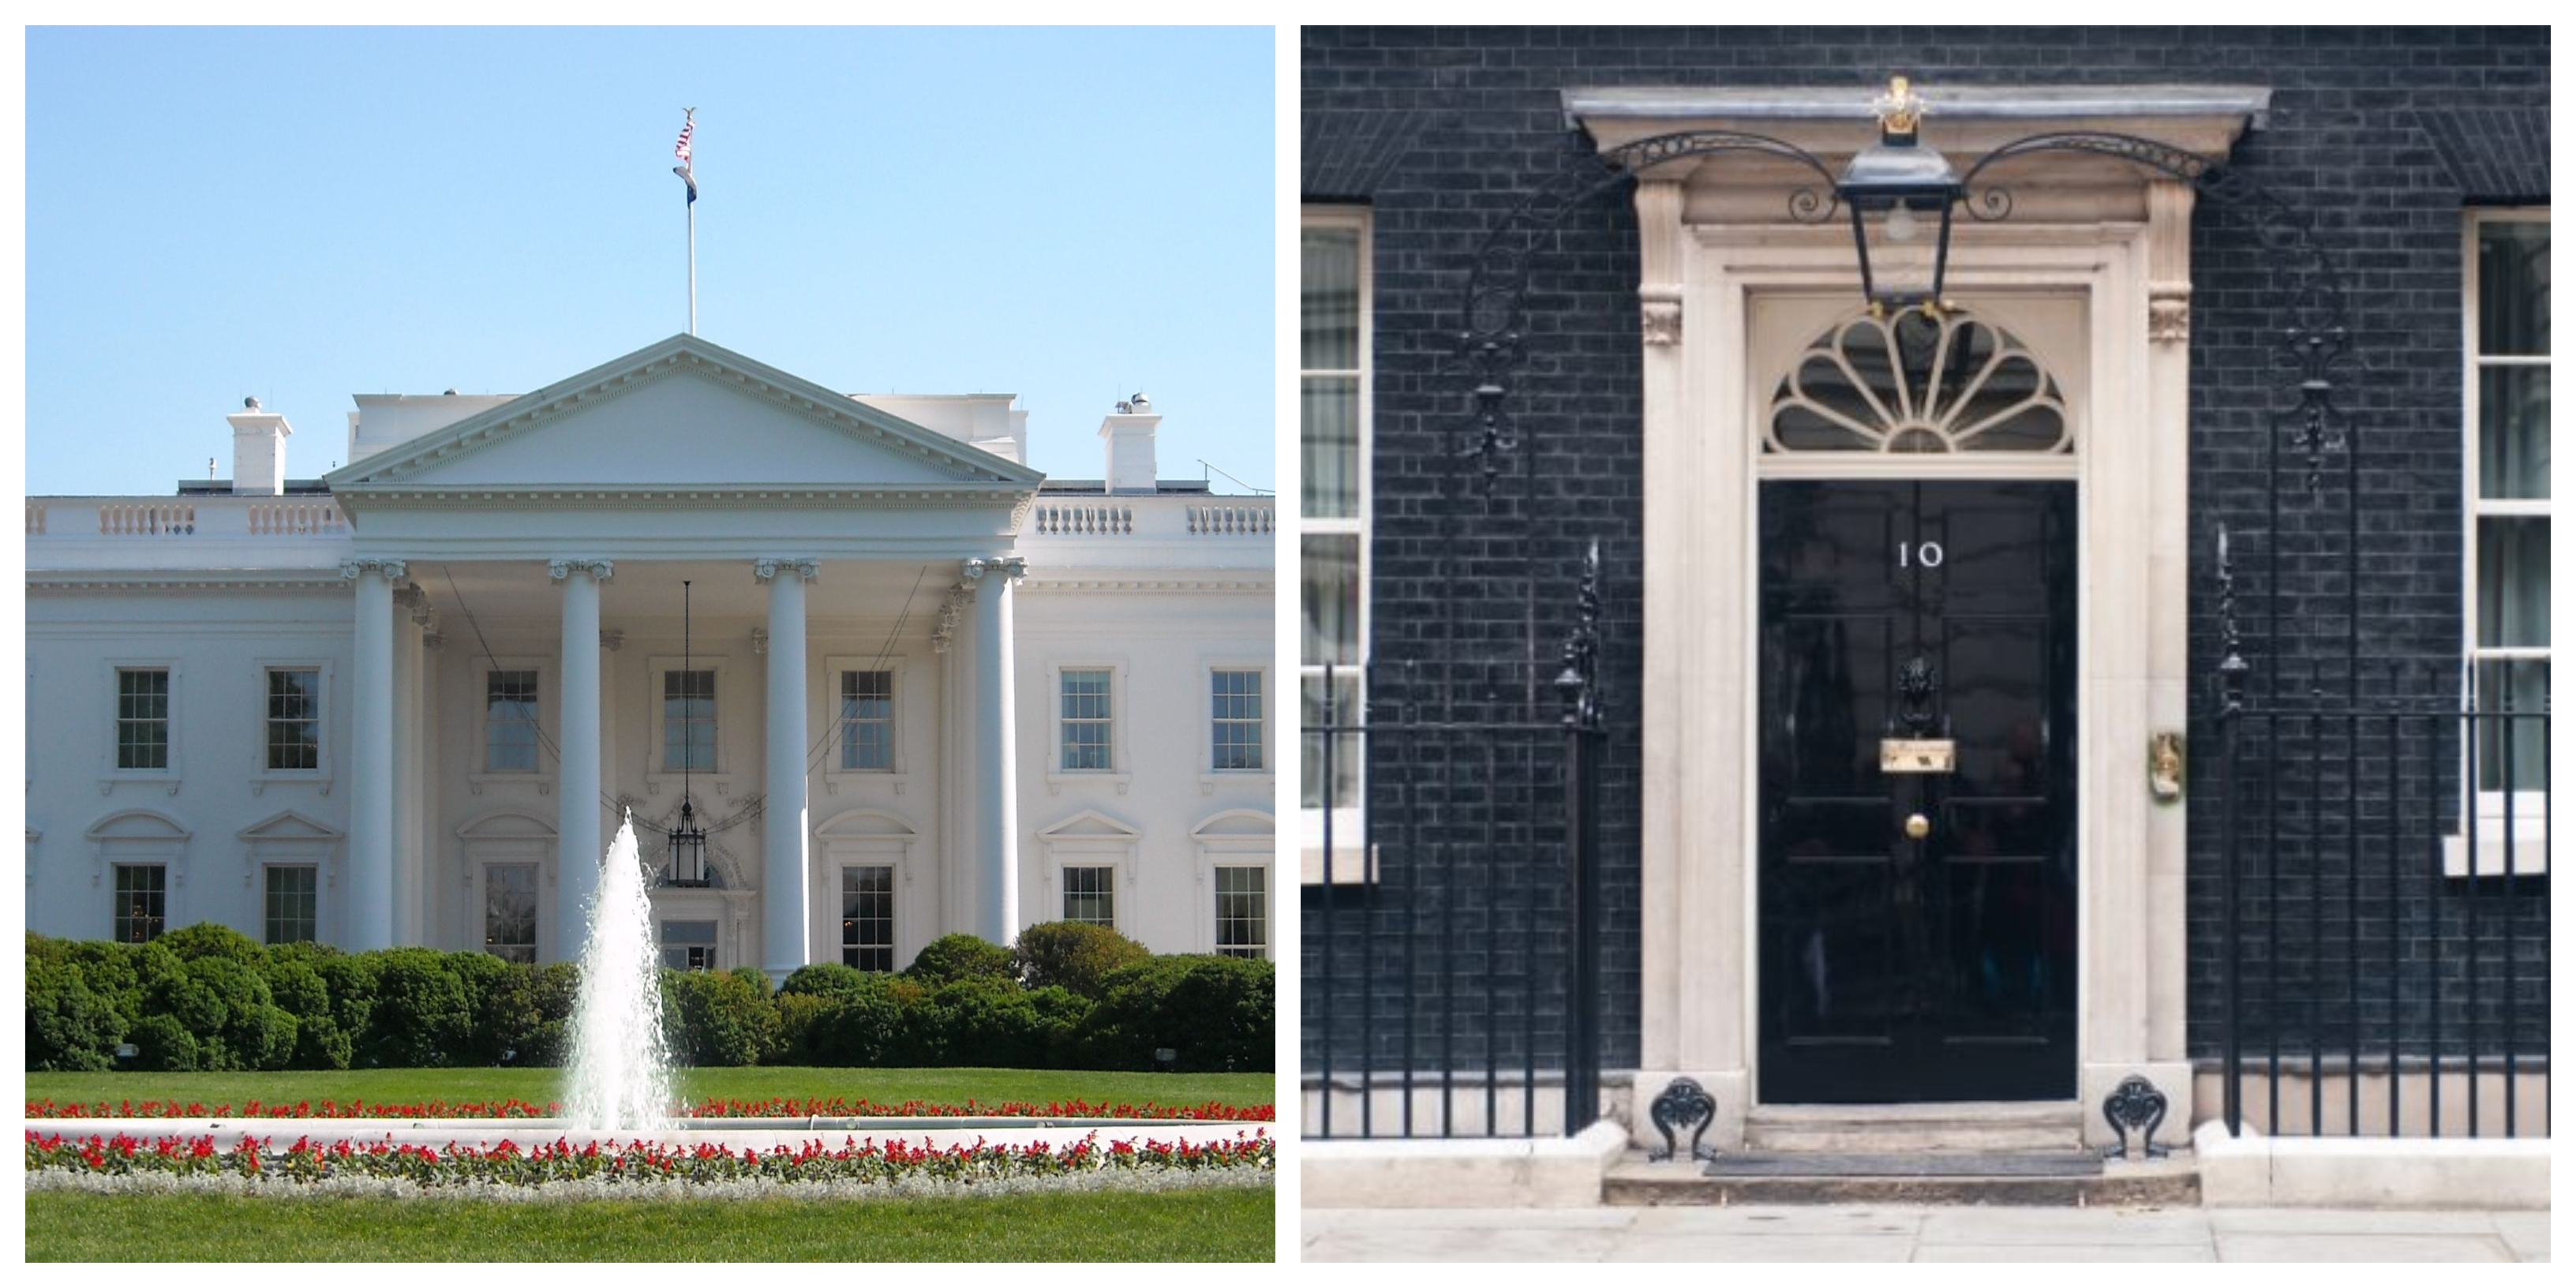 10 Downing Street vs The White House: Where Would You Rather Live?